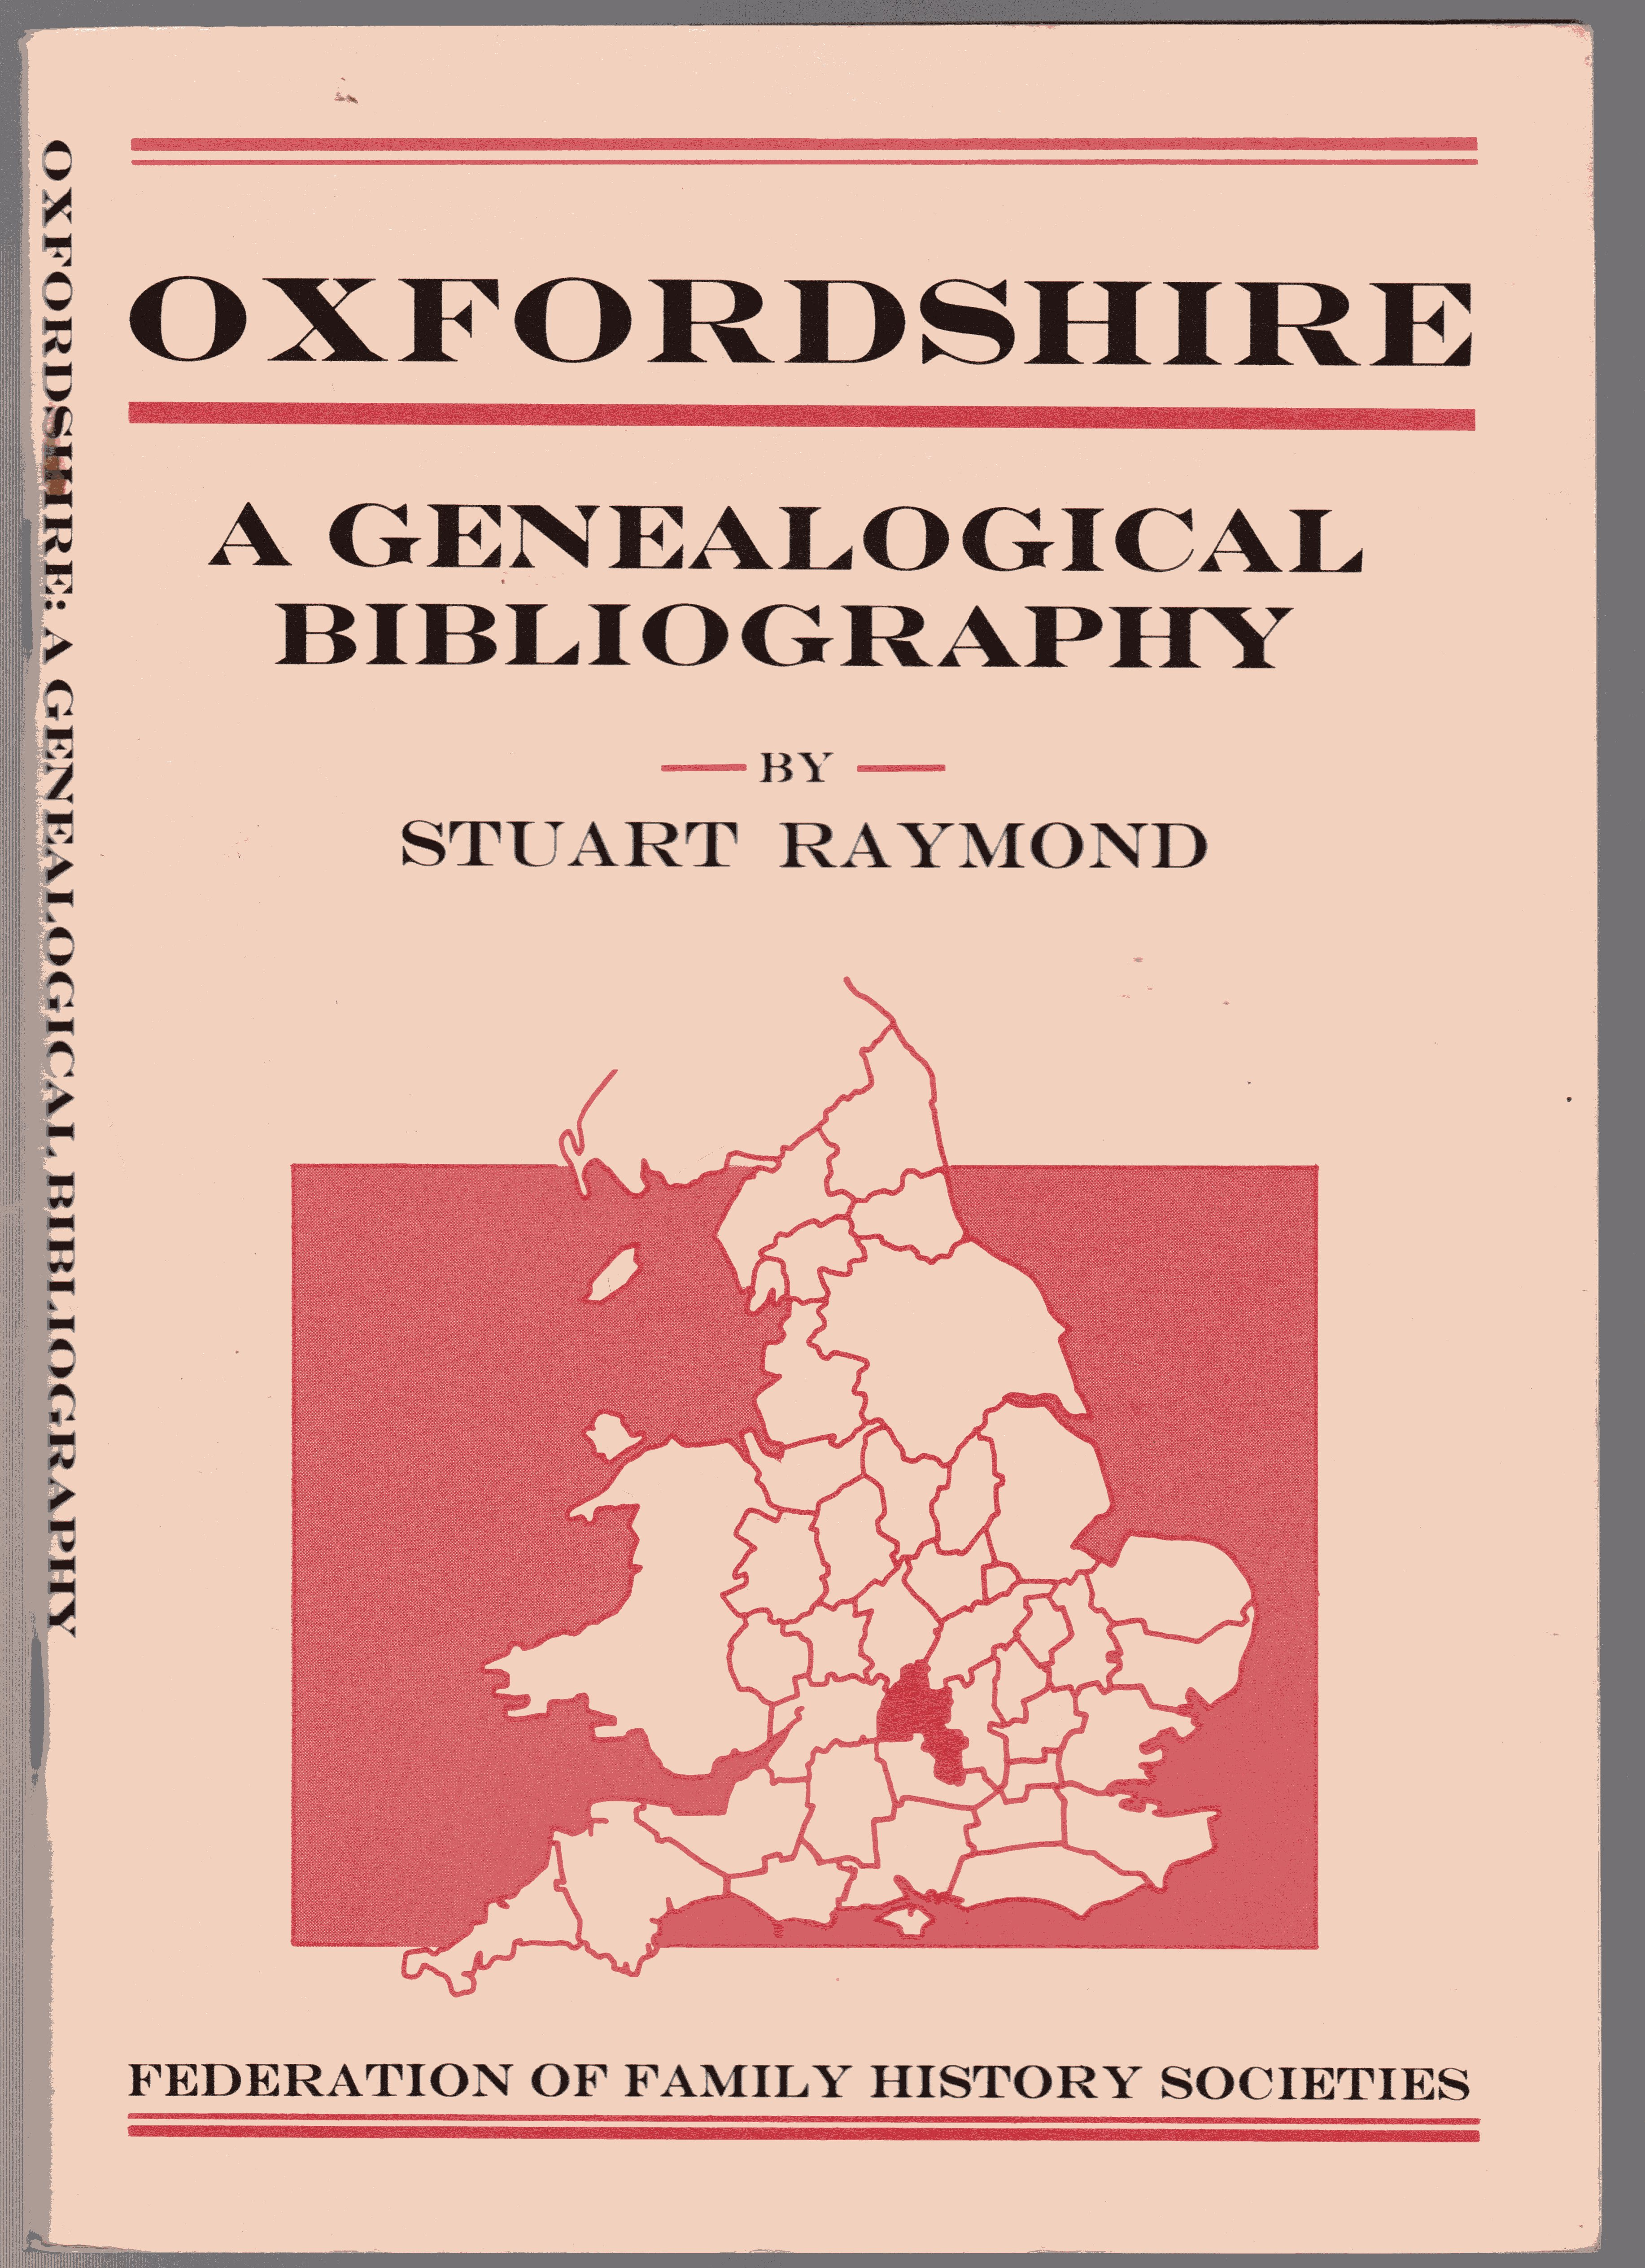 Image for Oxfordshire : A Genealogical Bibliography (British genealogical bibliographies)